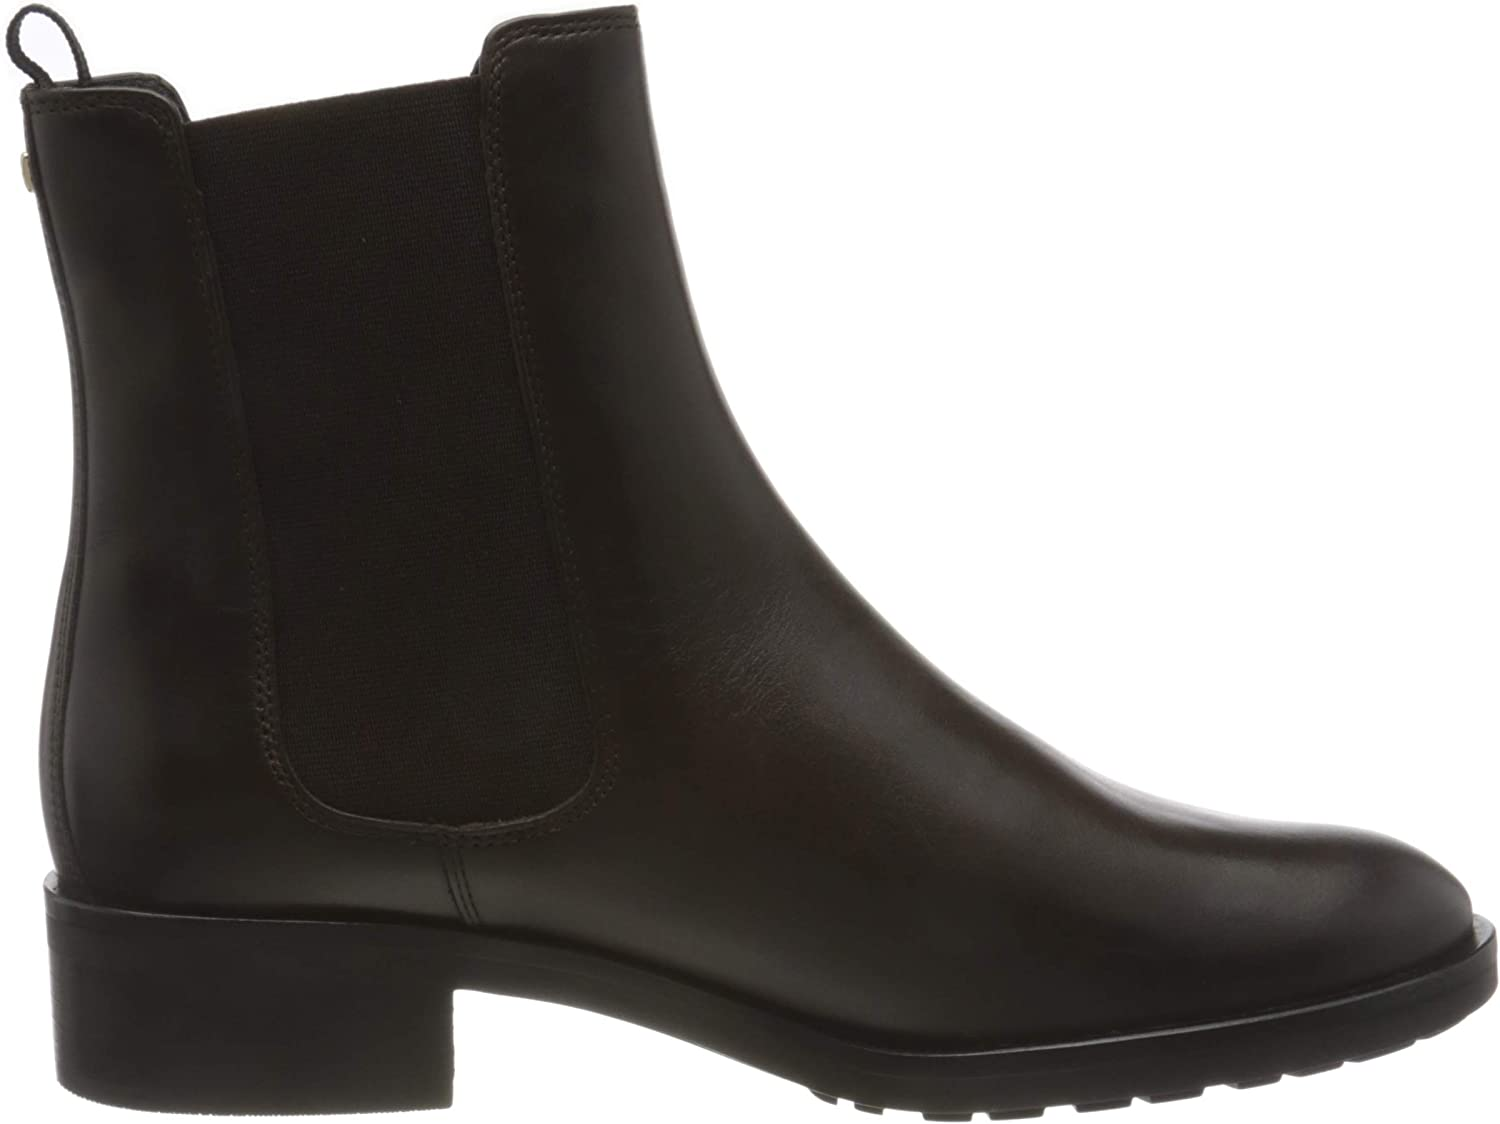 HÖGL Beatle Boot, Bottine Femme Darkbrown 8600